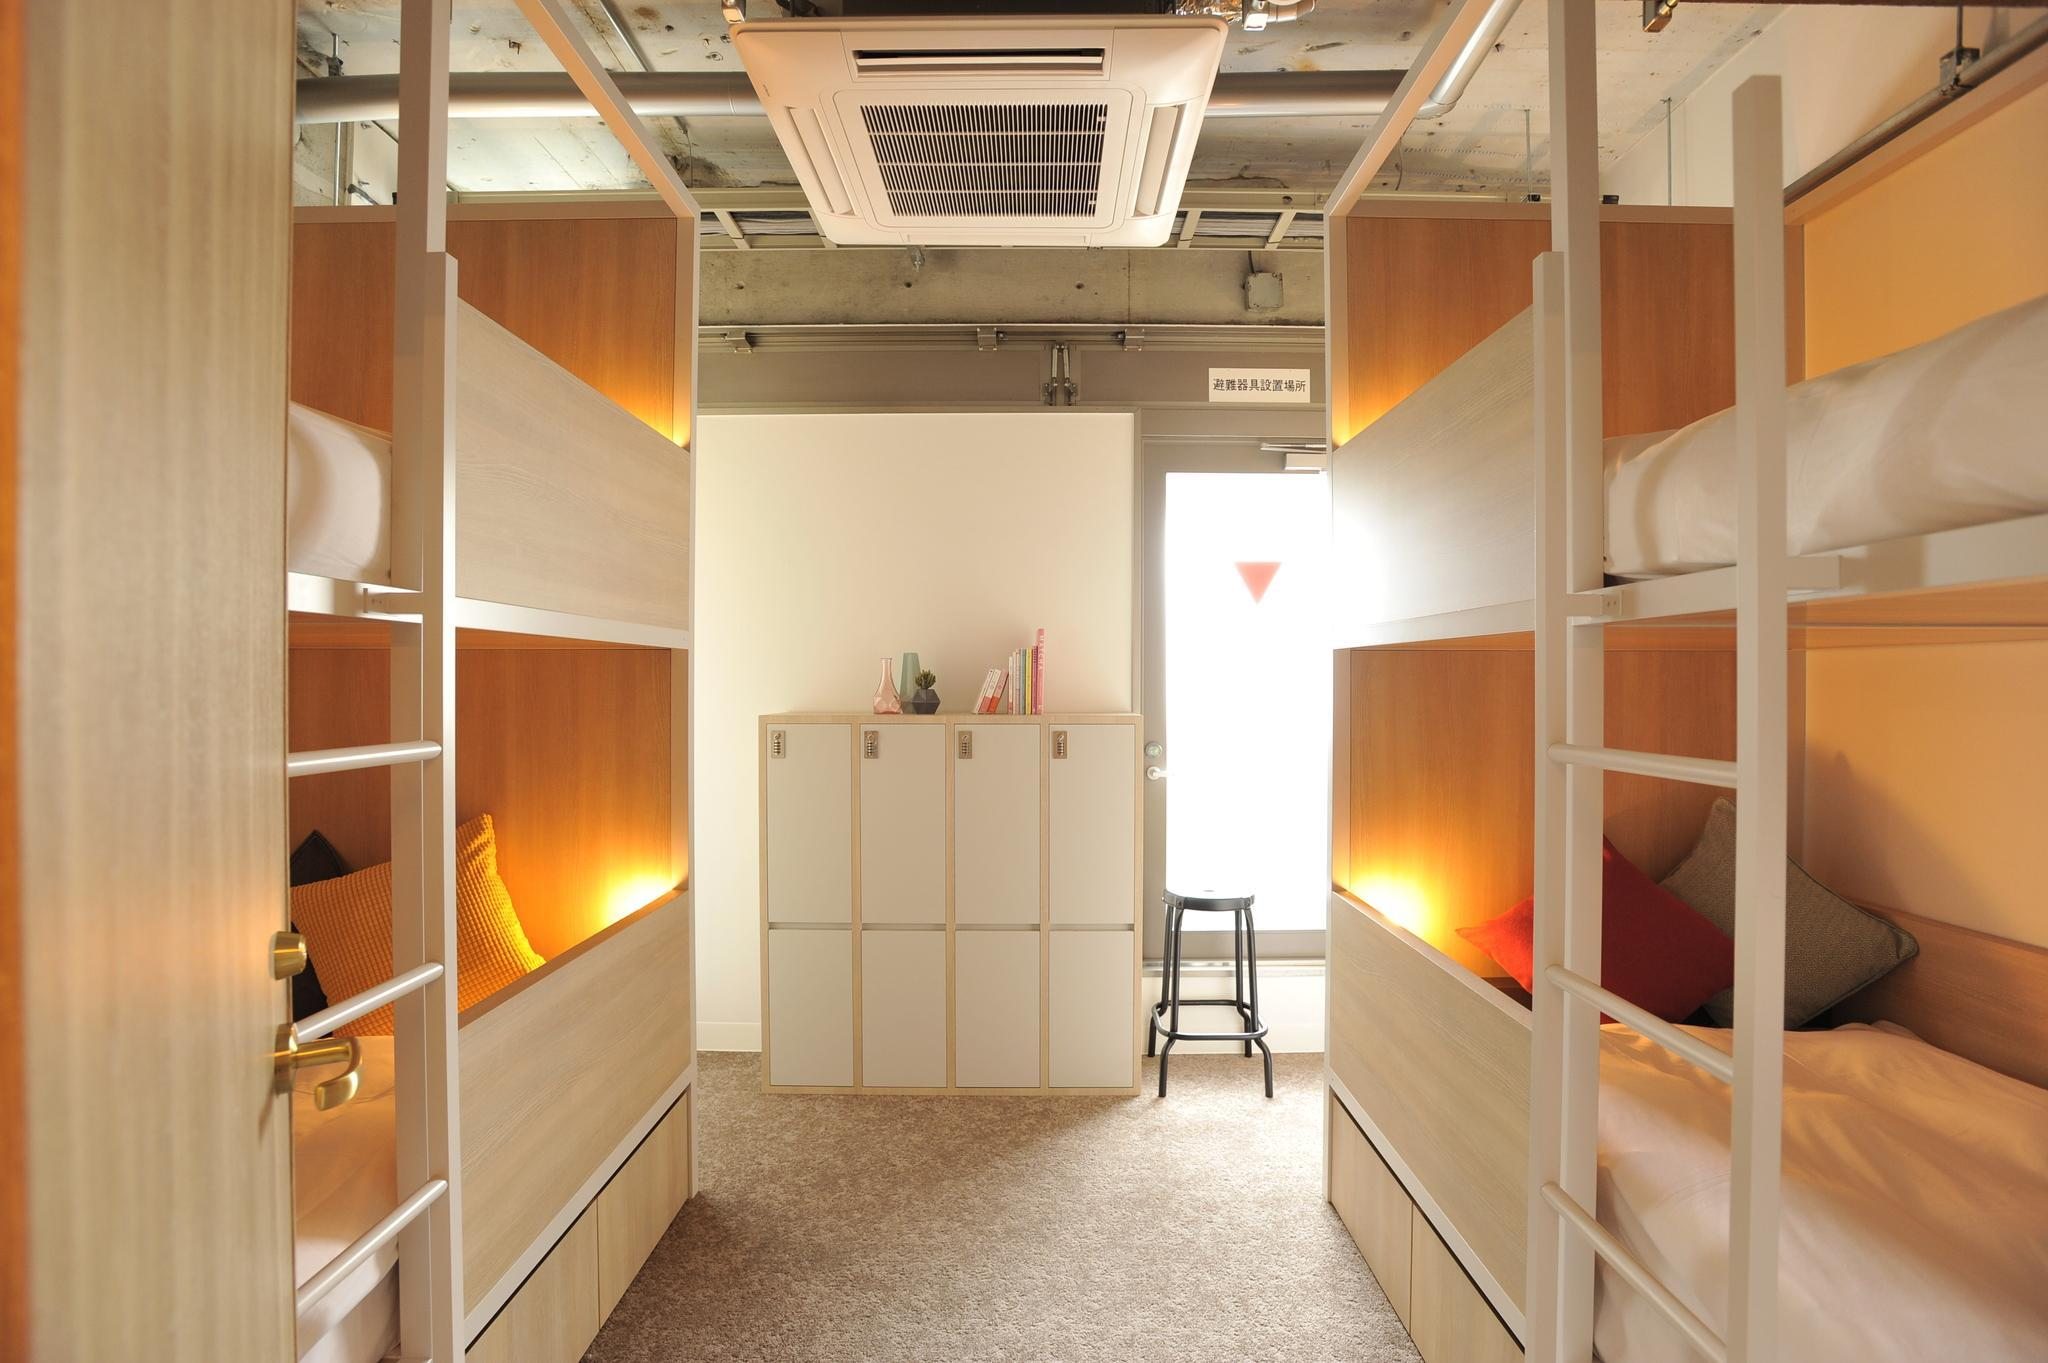 Private Room for 4 People with 2 Bunk Beds - Female Only